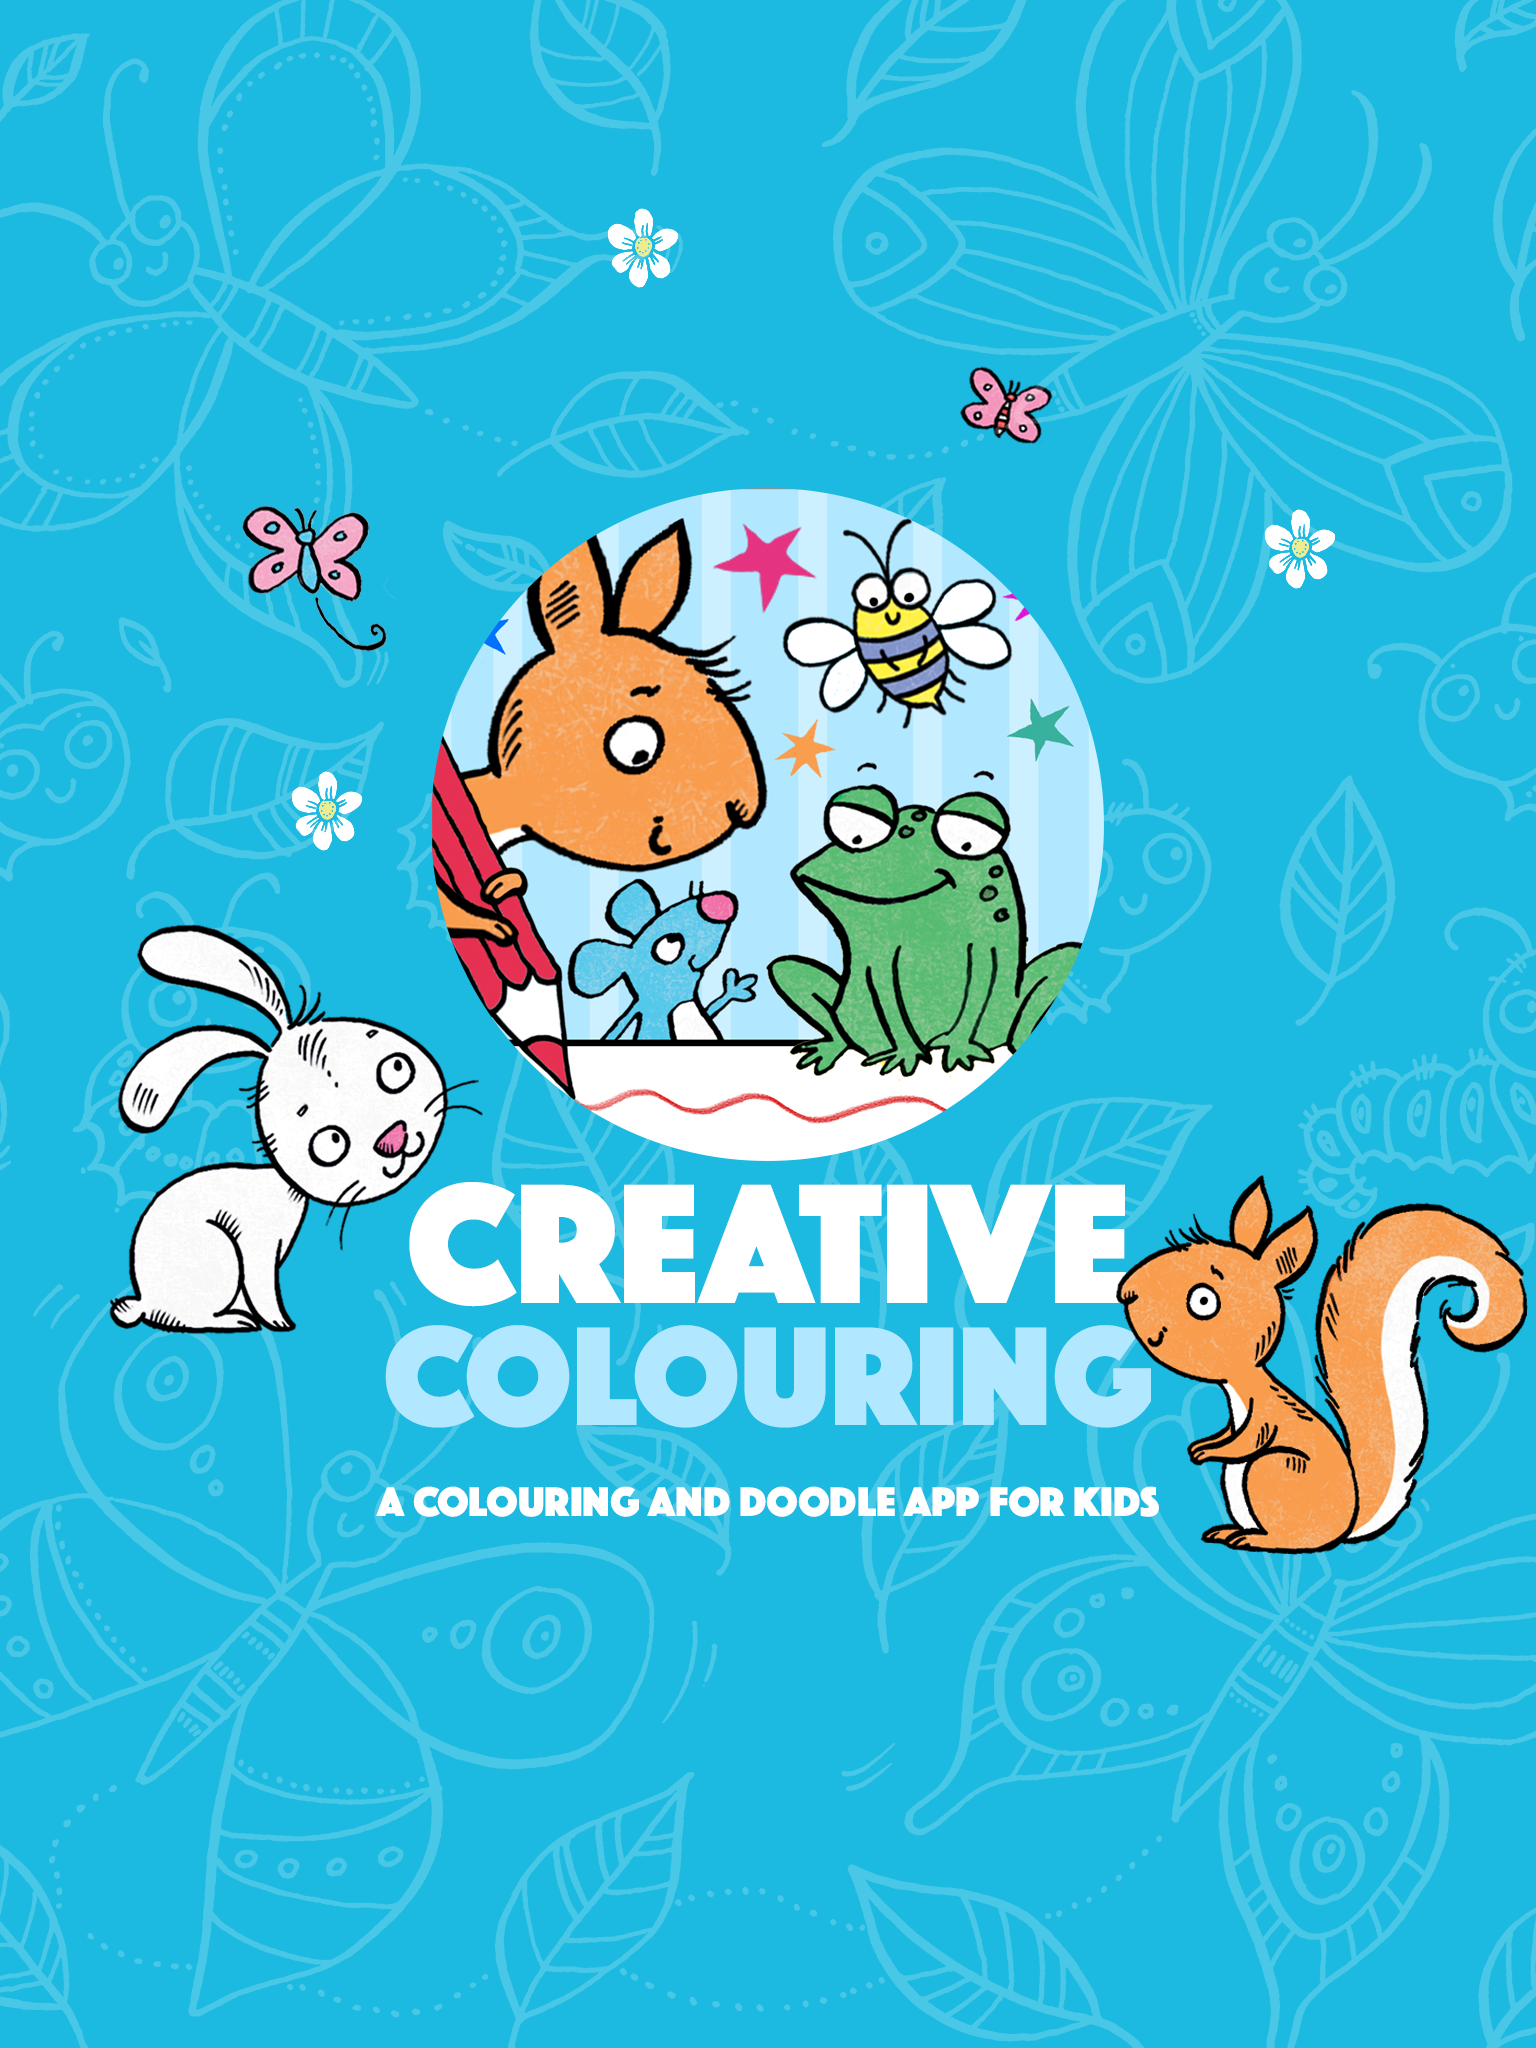 Children's colouring app for Independent Publisher, Buster Books